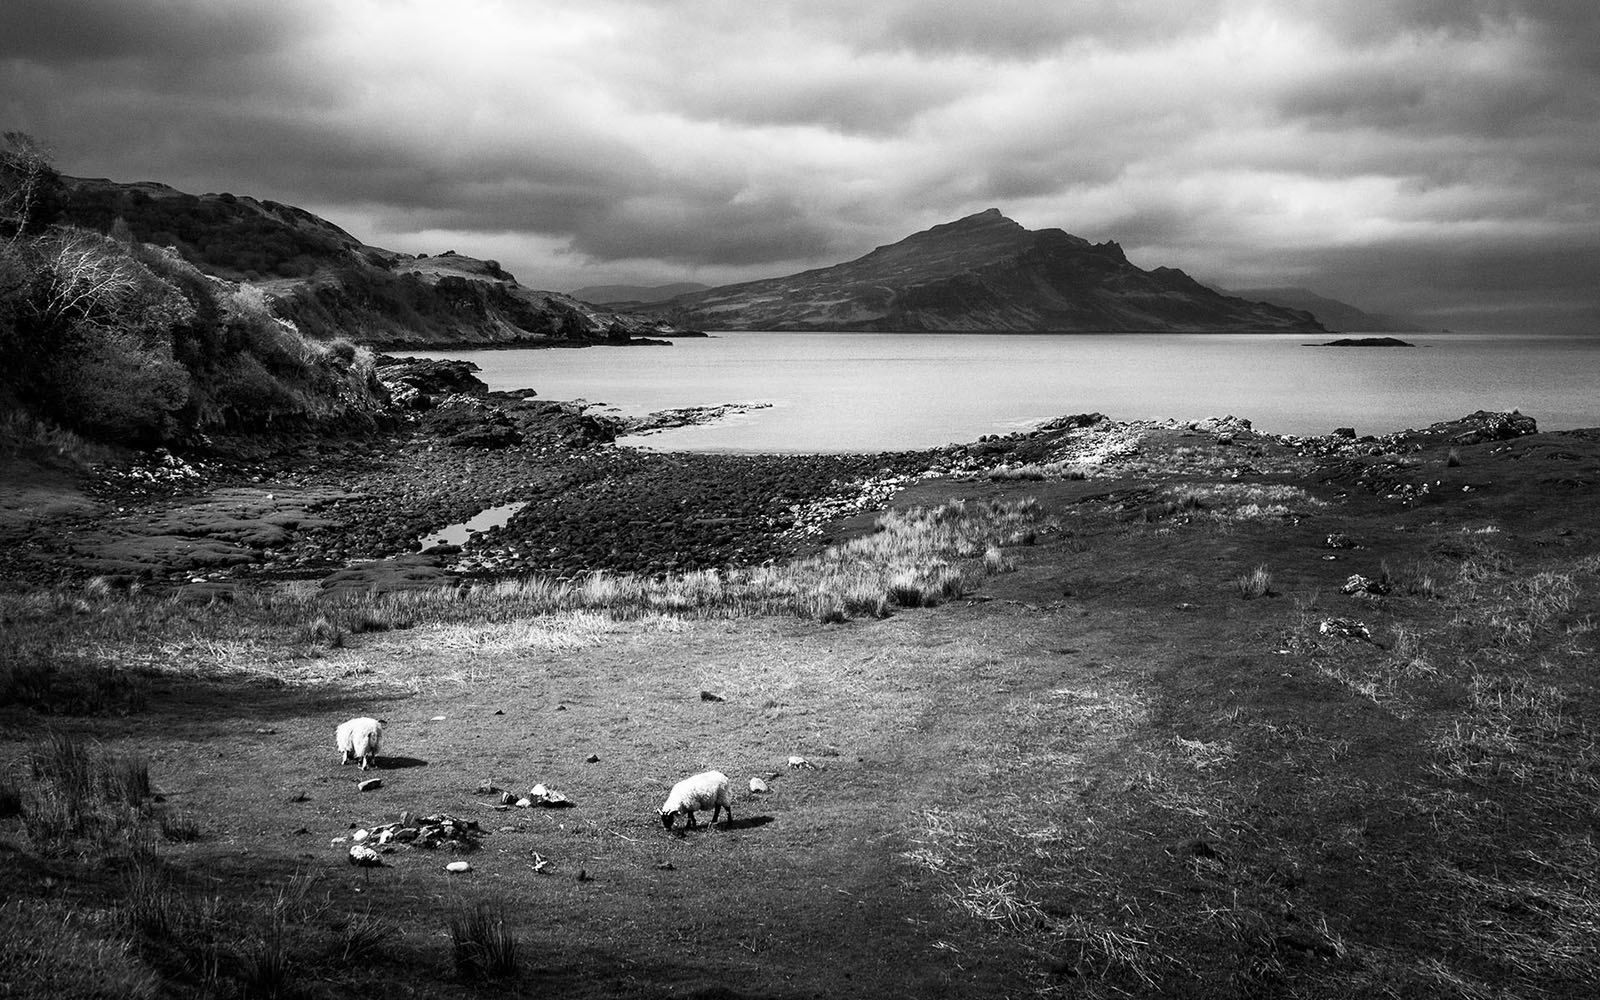 Scotland - Isle of Skye Coastline - Black & White Fine Art Photography Series